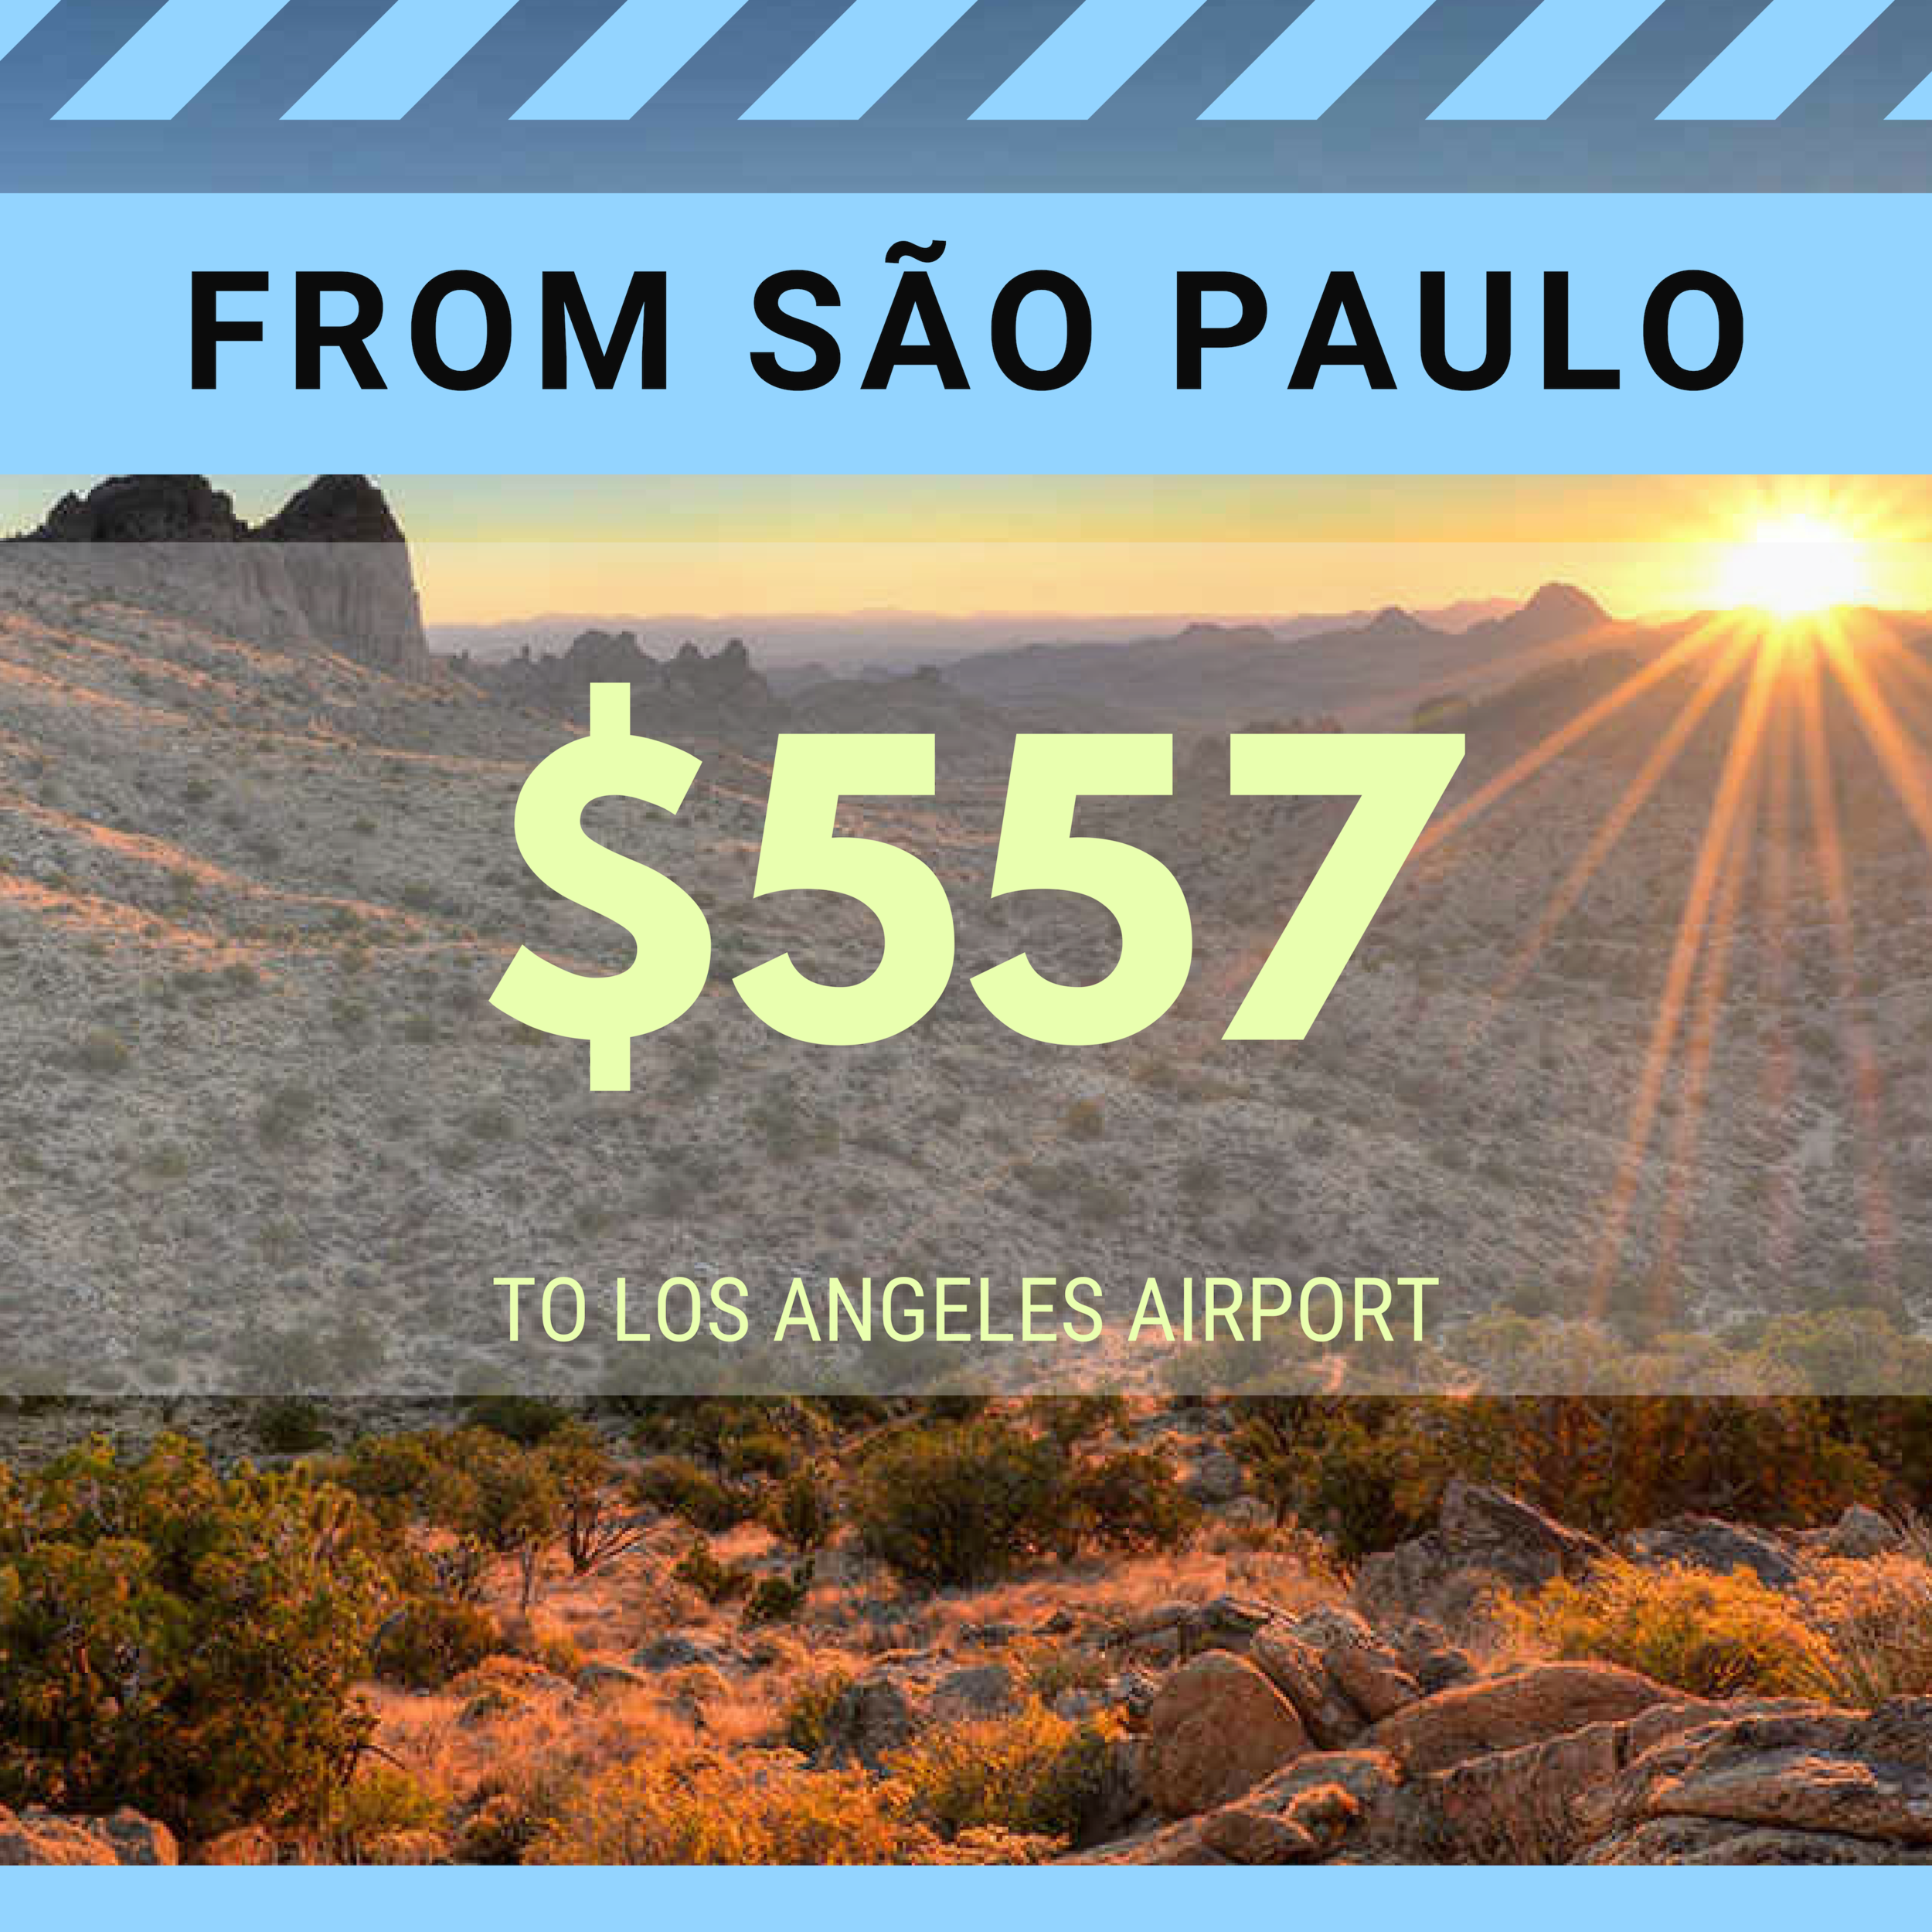 FROM SAO PAULO TO LAX